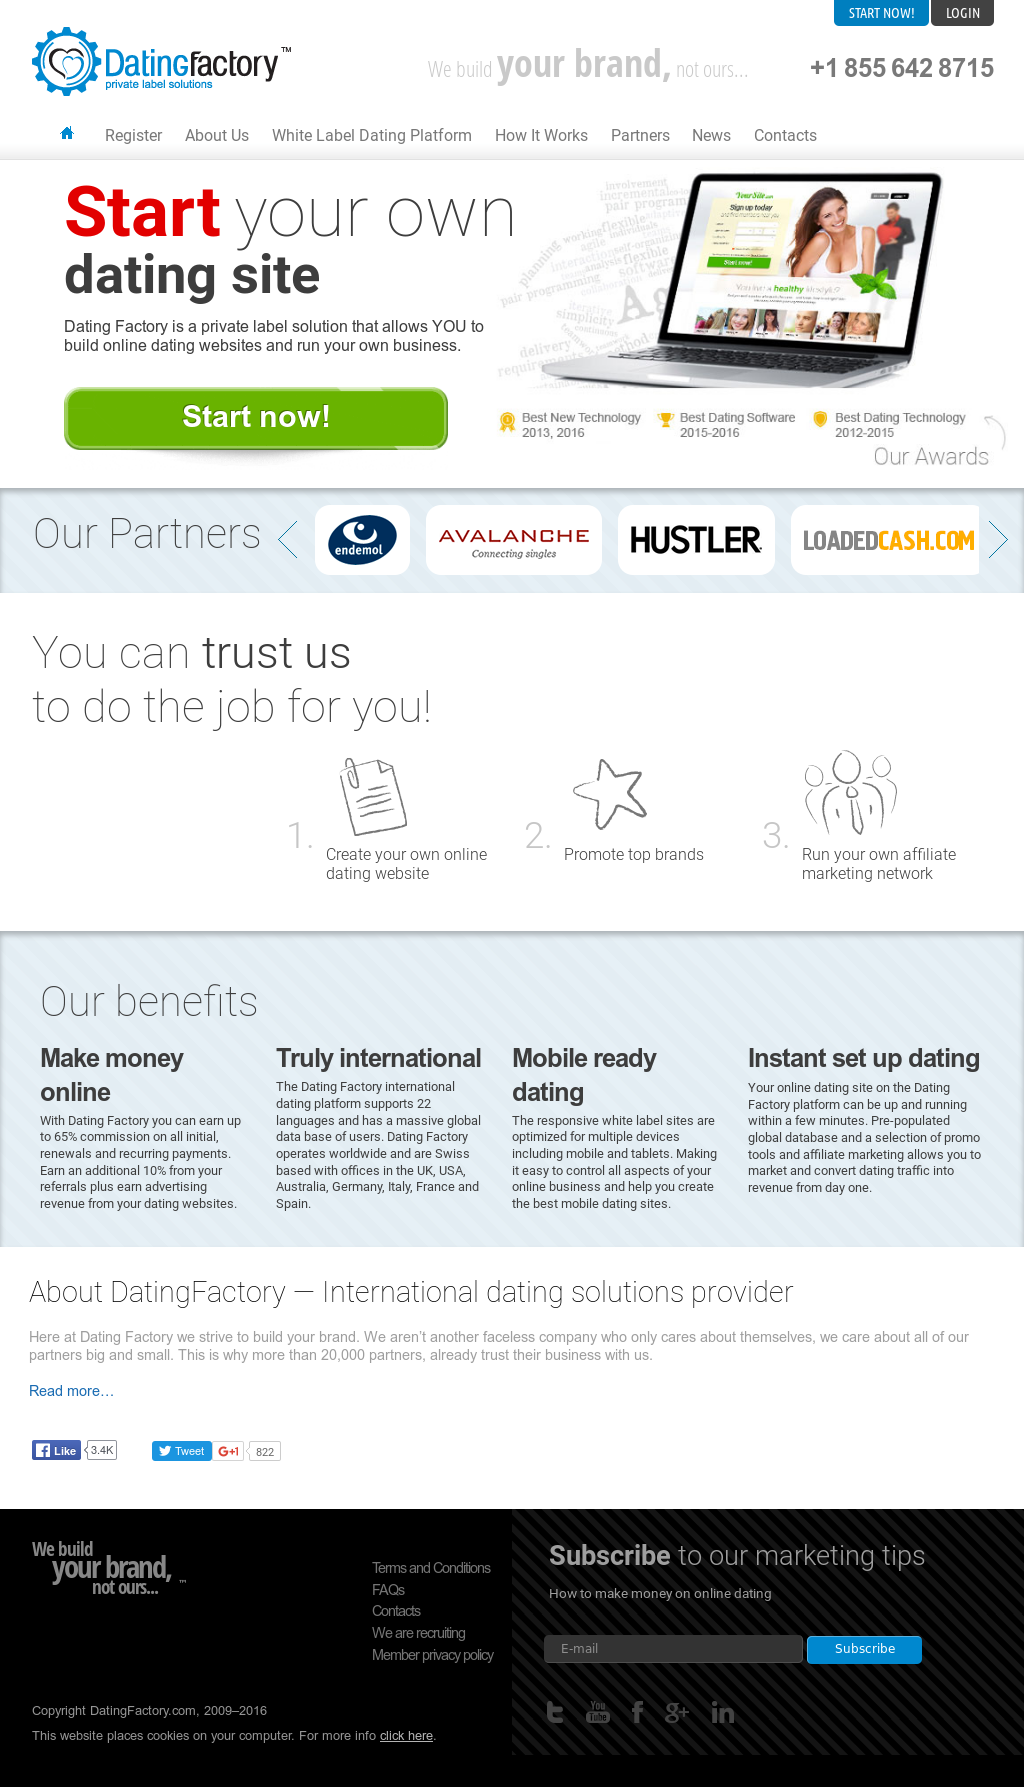 best dating software 2015